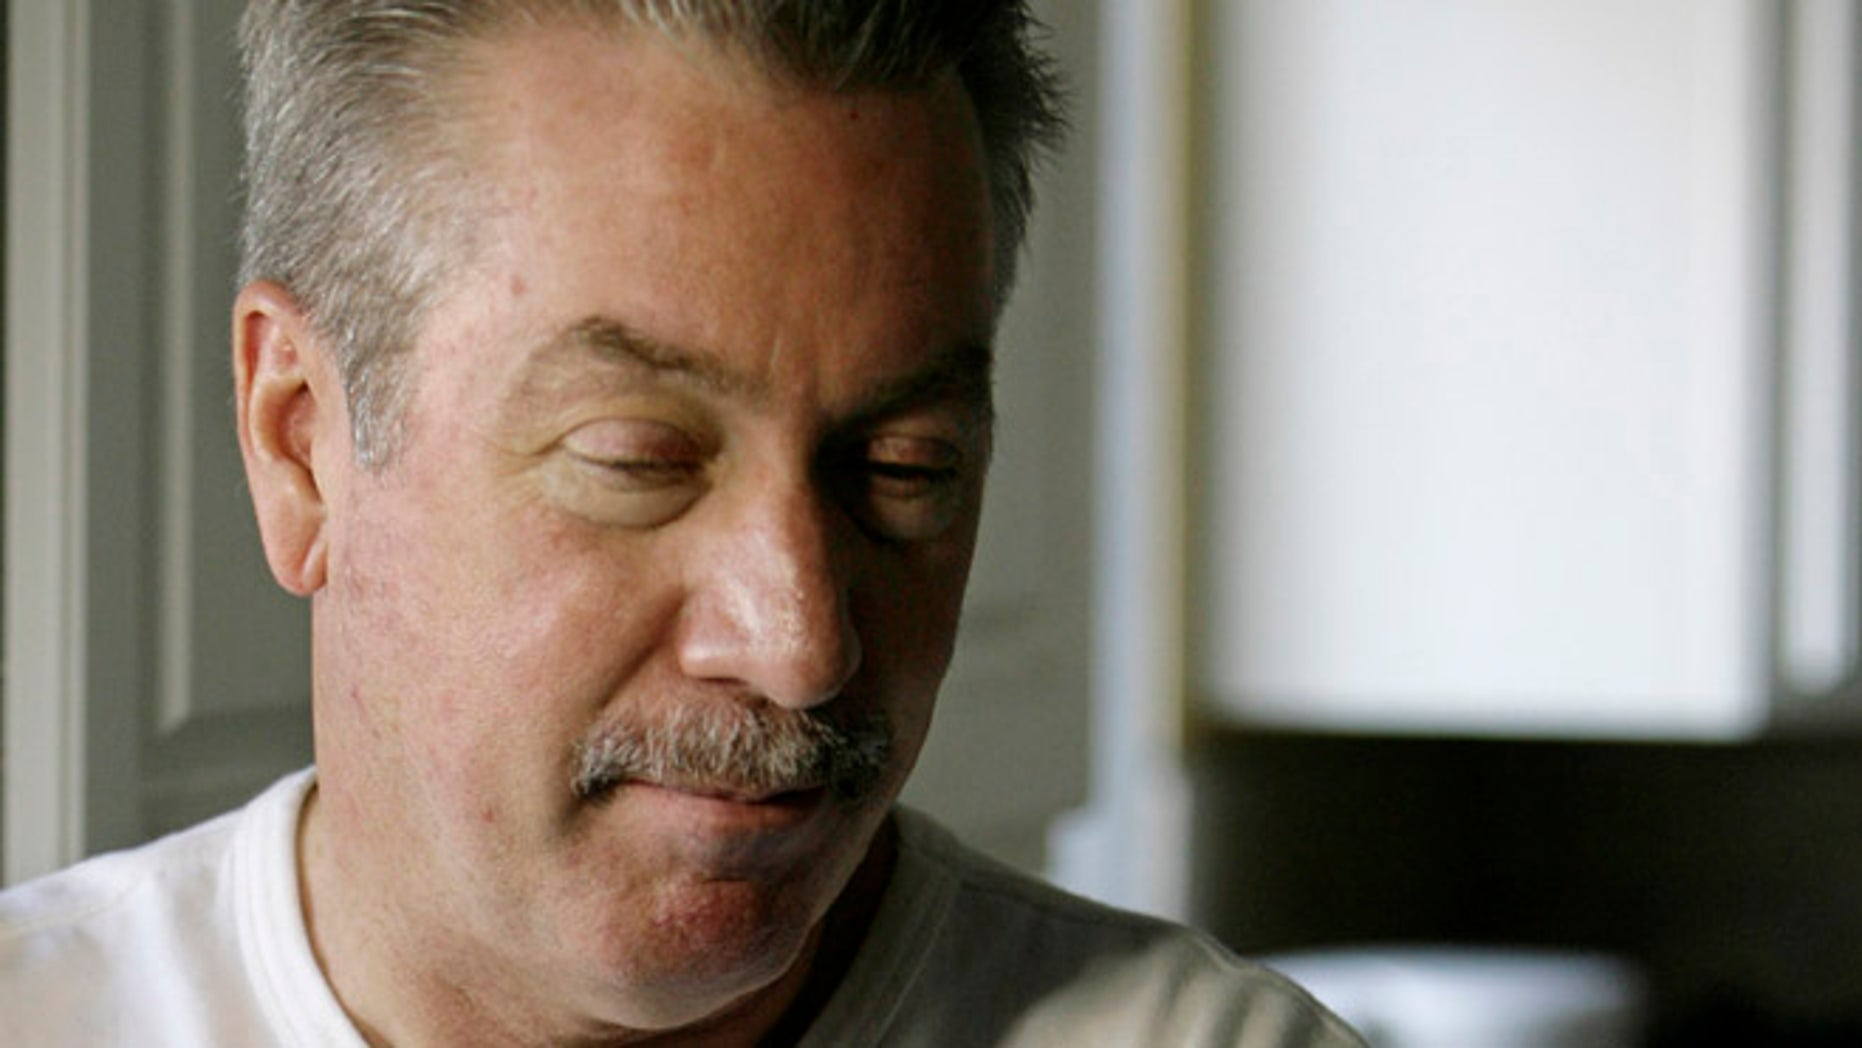 FILE 2008: Drew Peterson, who is on trial for the murder of his third wife, Kathleen Savio who died in 2004, reflects on the 2007 disappearance of his fourth wife, Stacy Peterson.